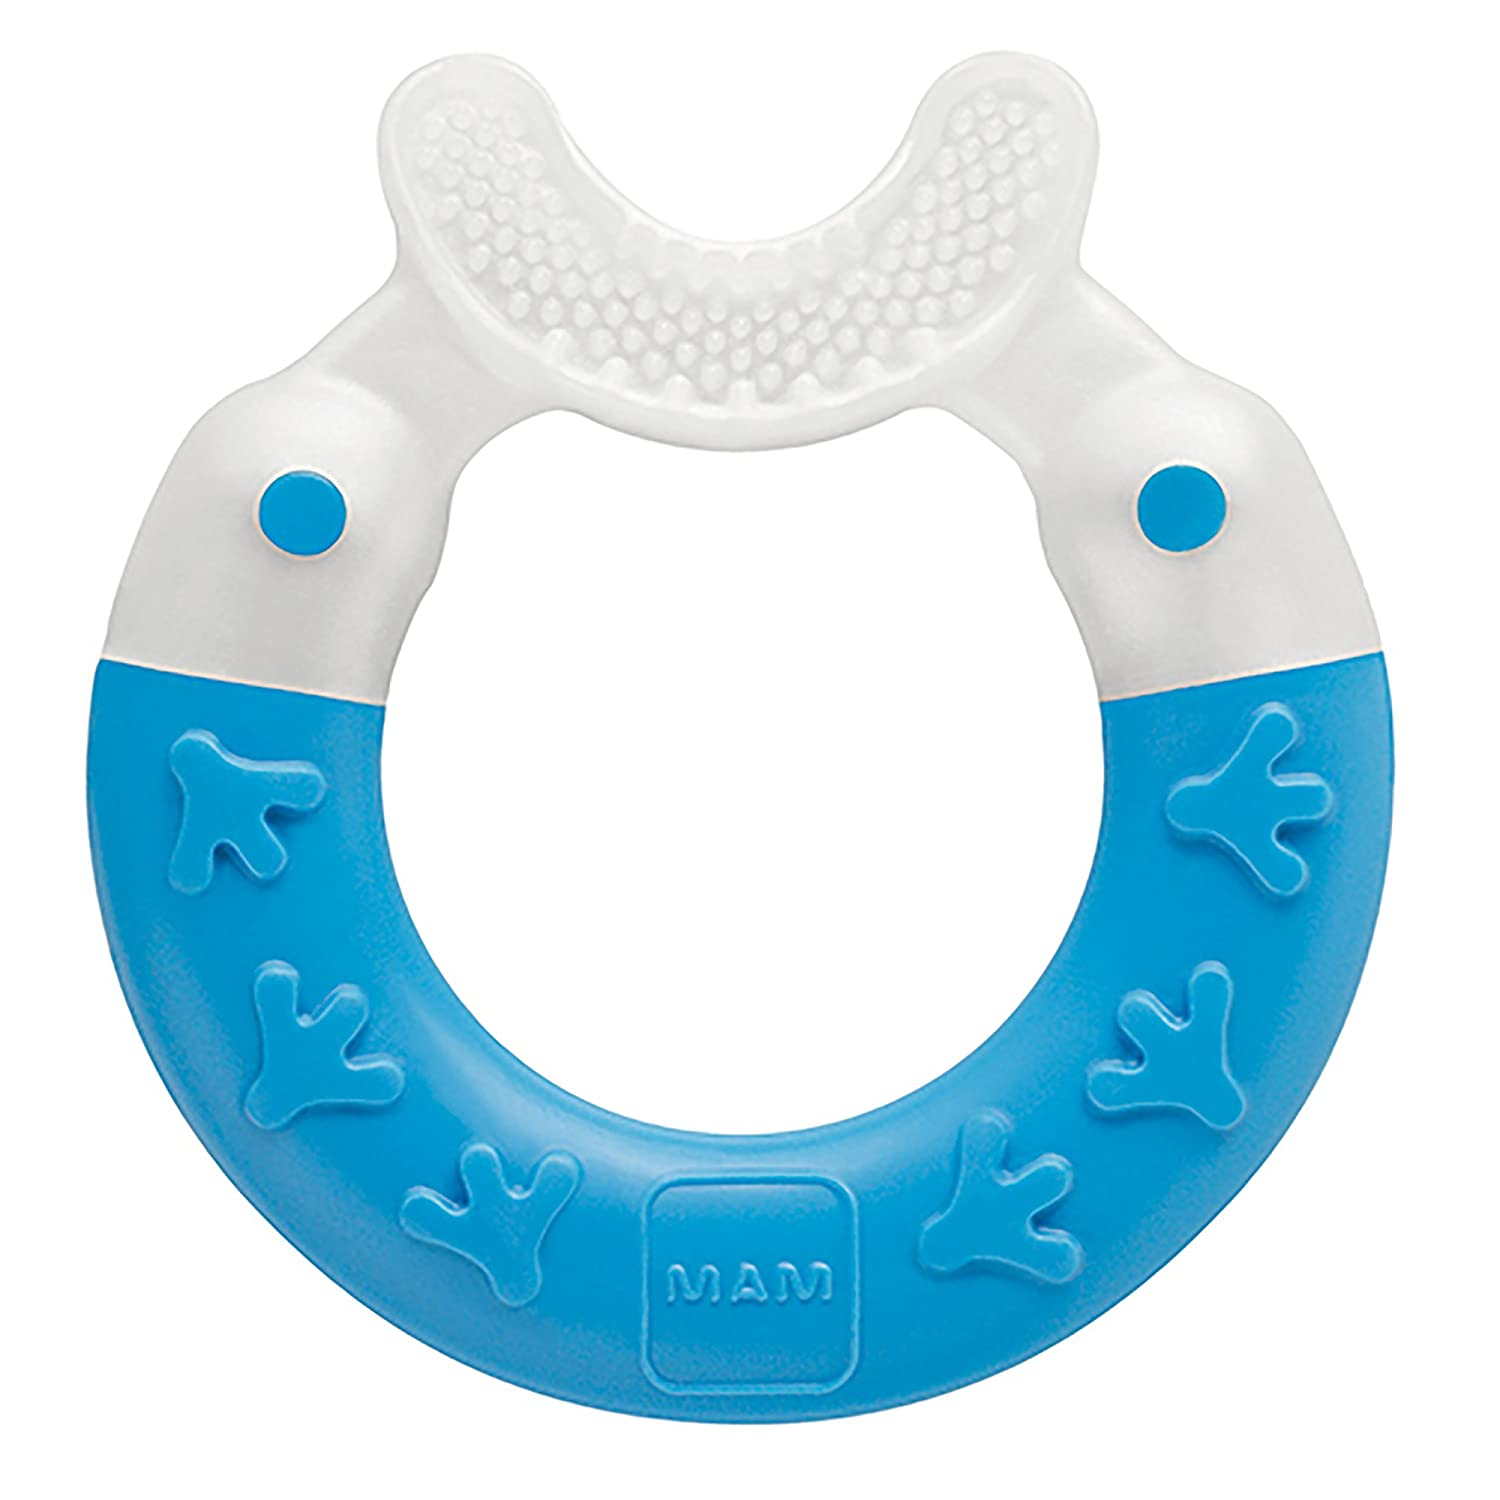 MAM Baby Toys, Teething Toys